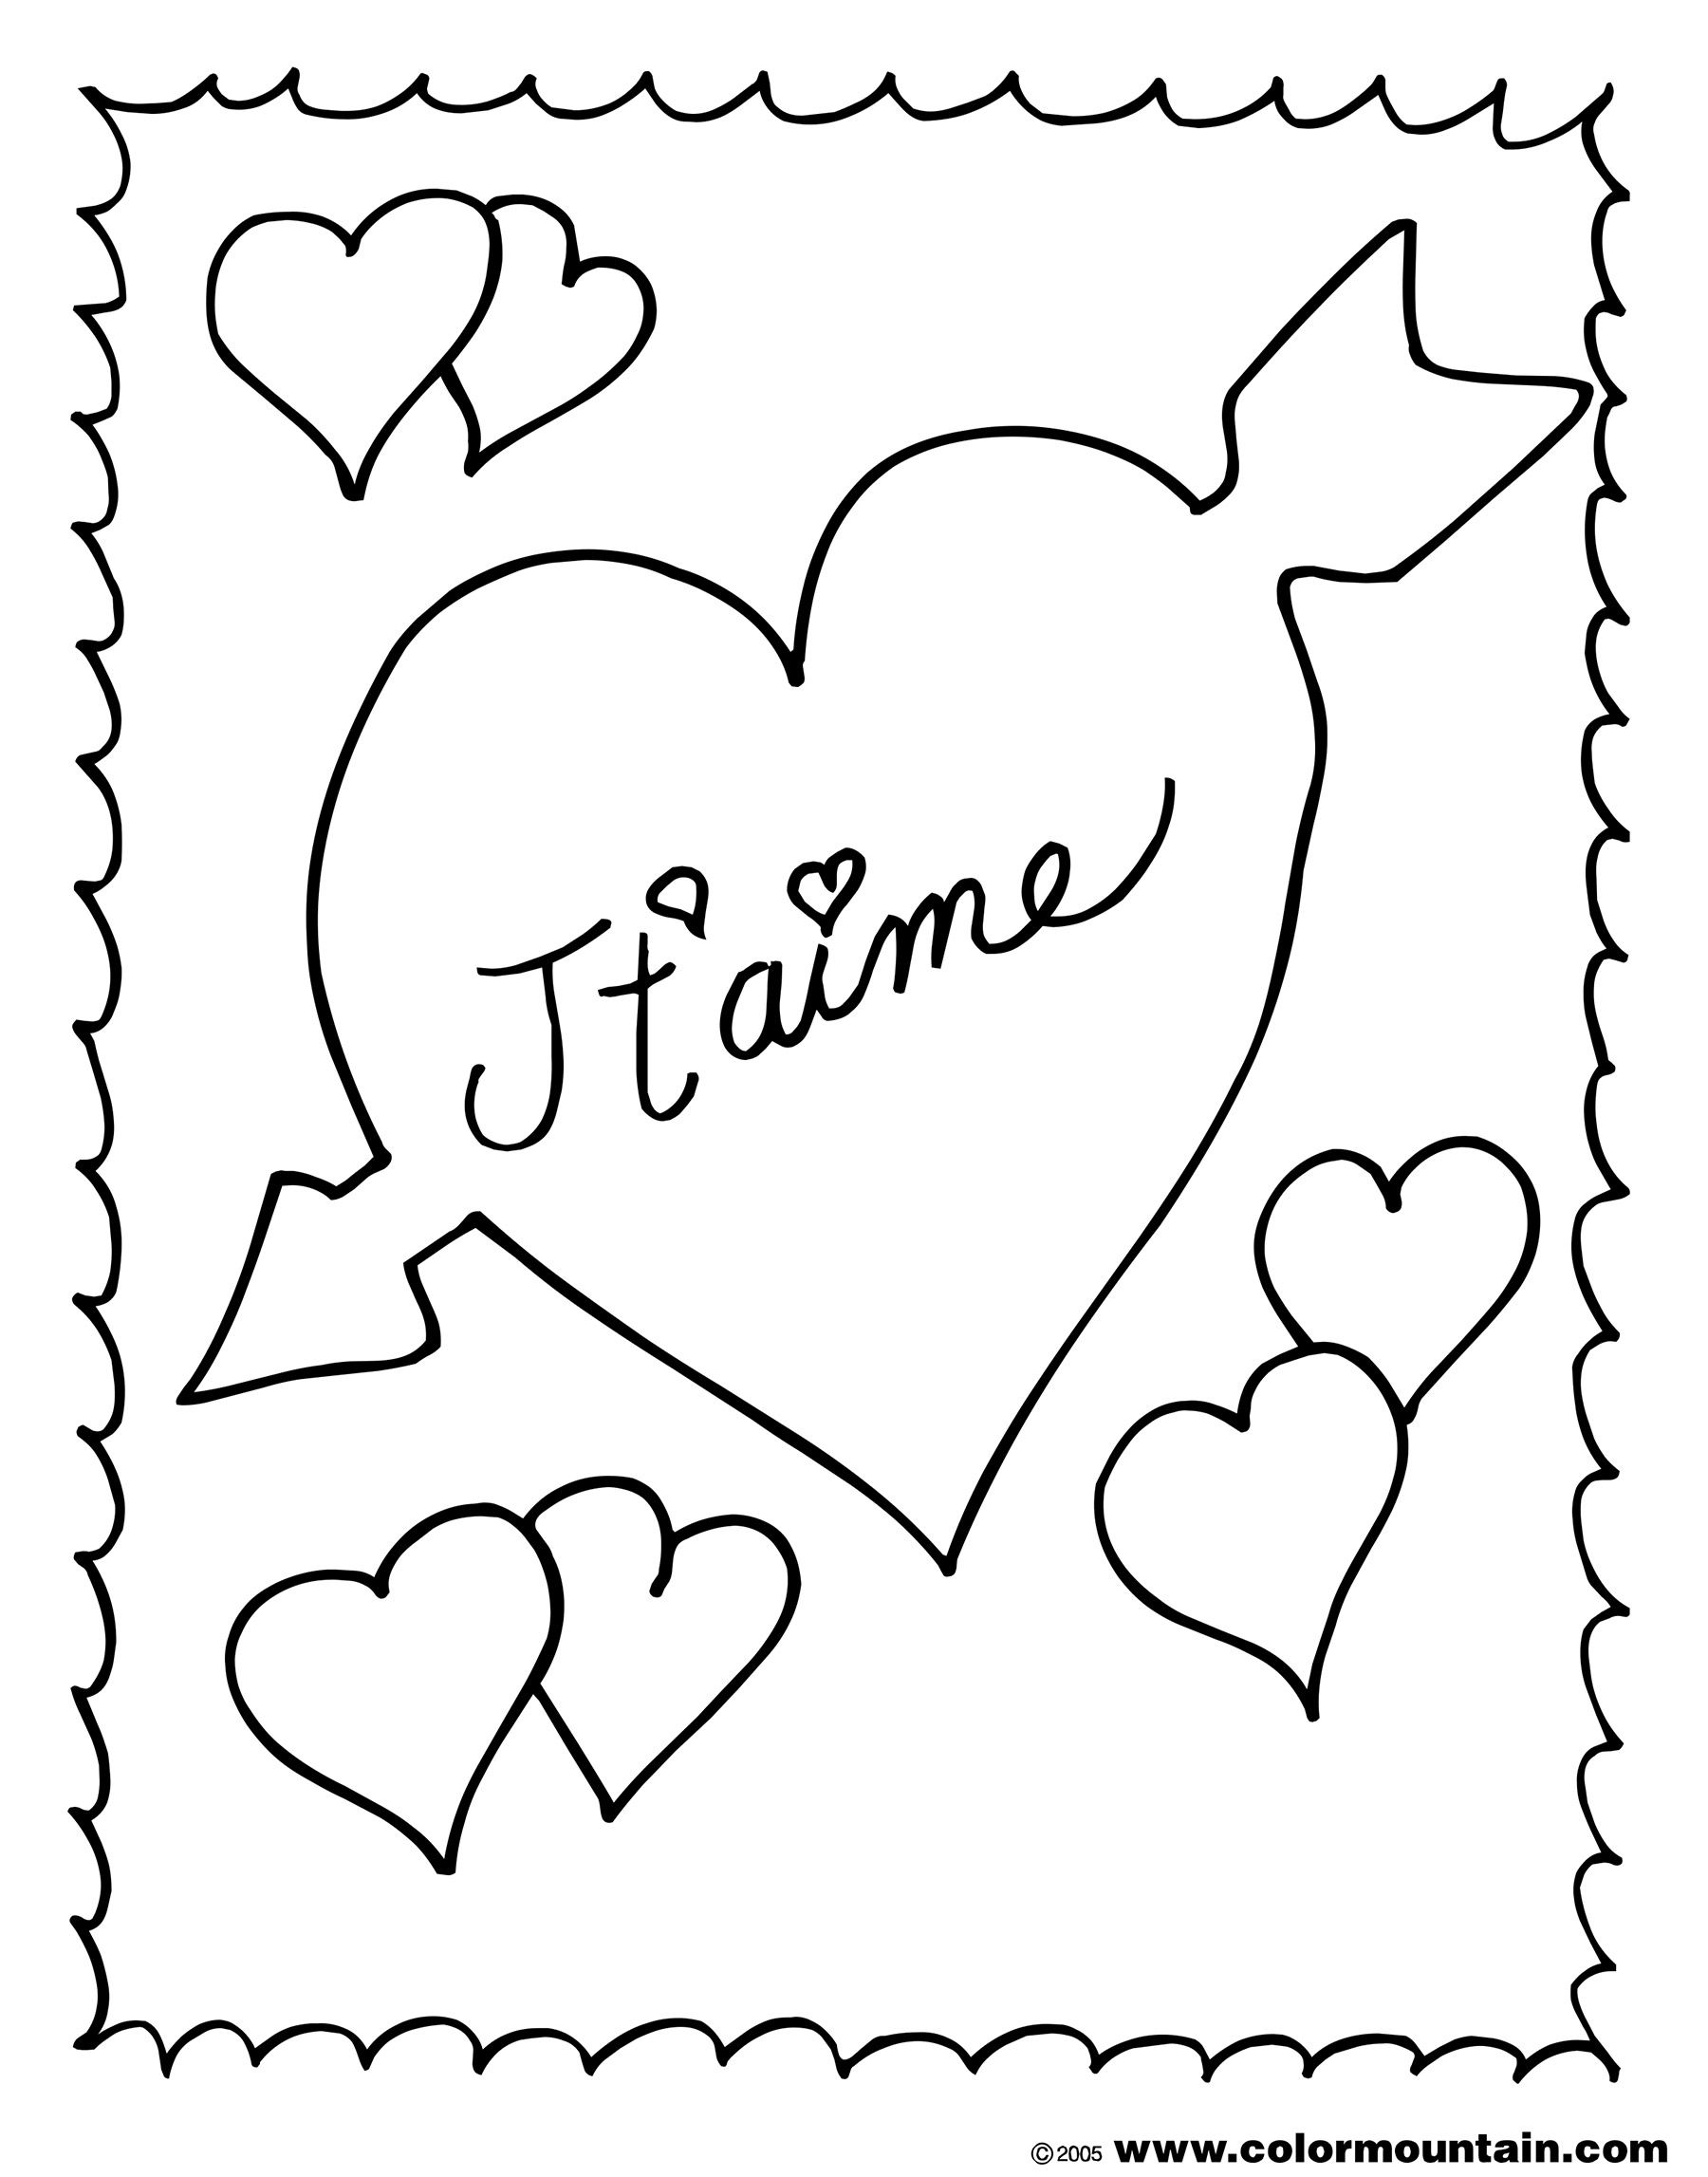 French valentine coloring page